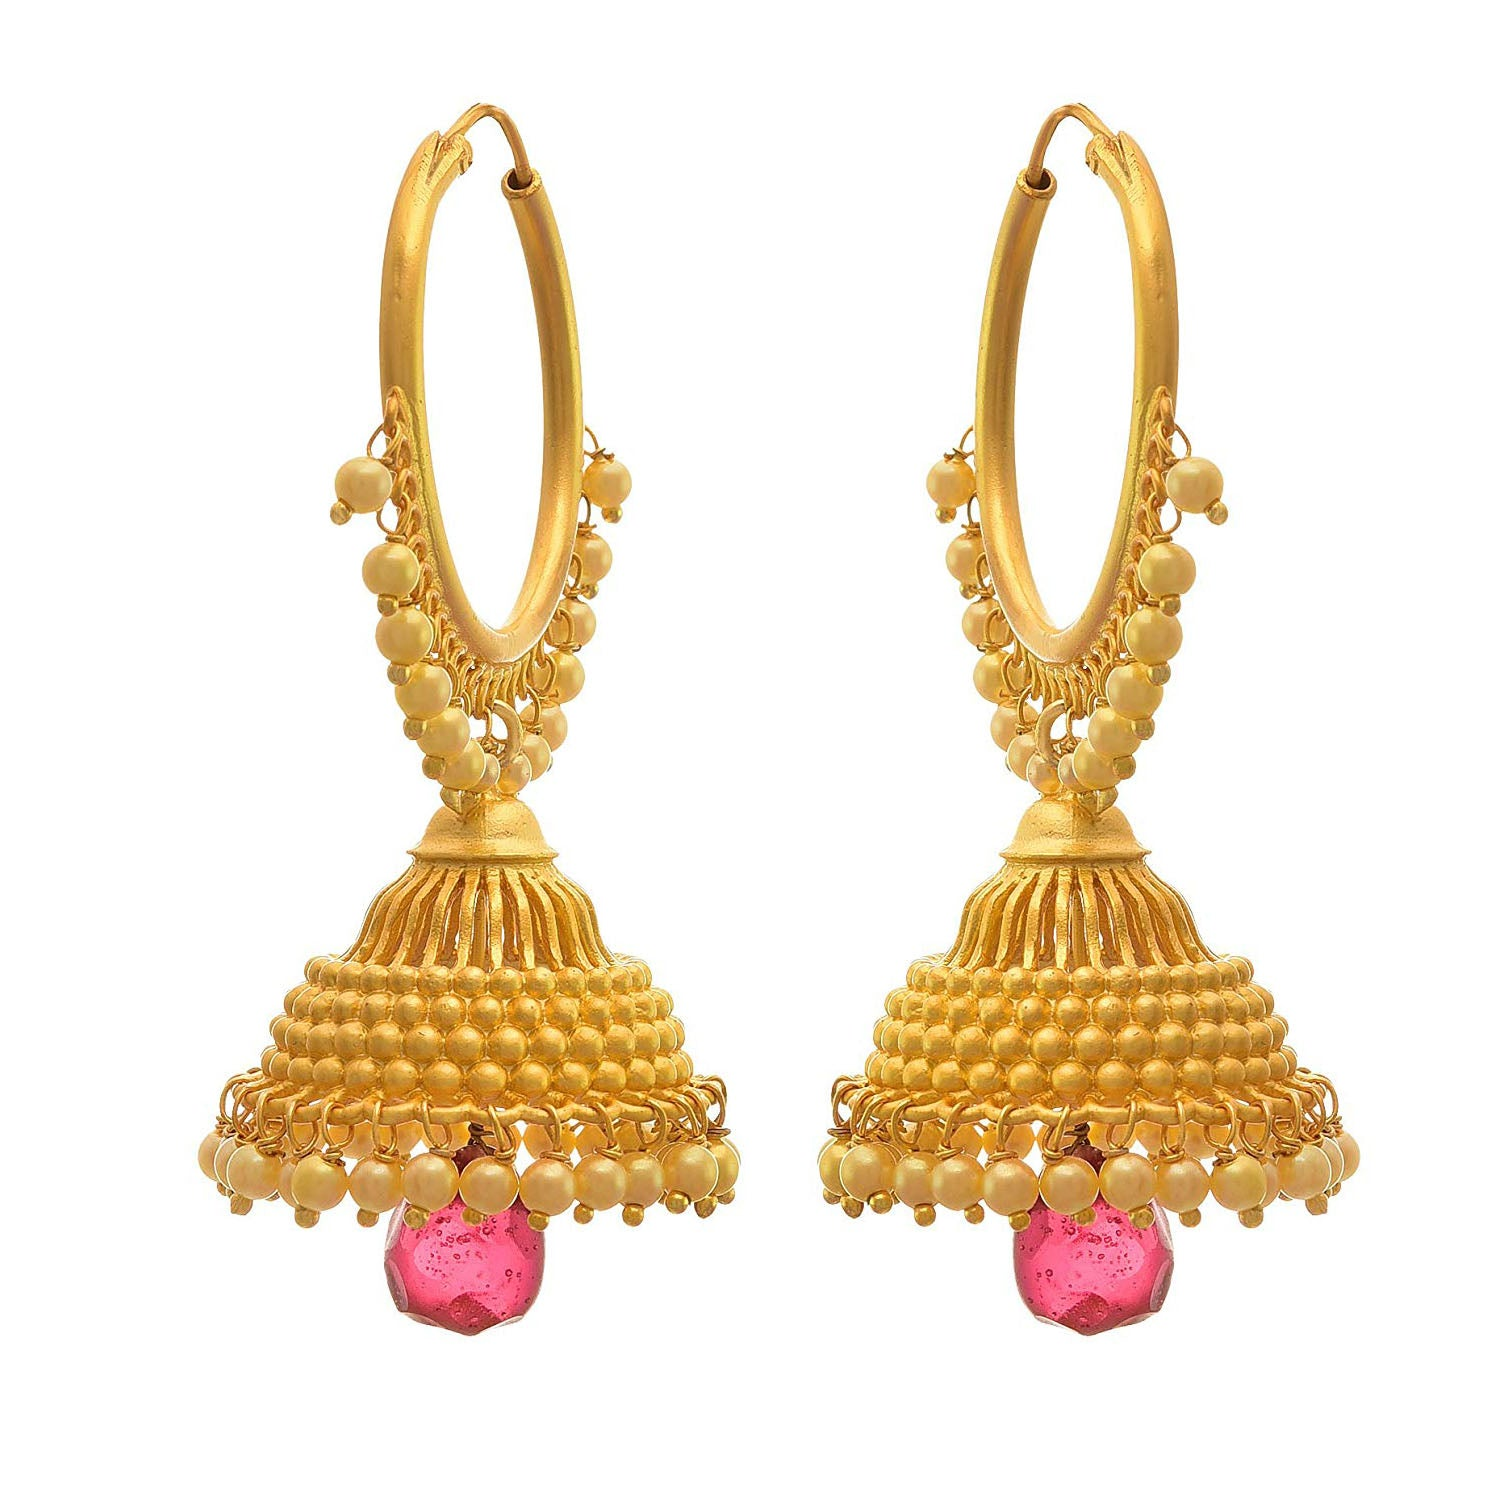 JFL- Traditional Ethnic One Gram Gold Plated Red Pearl Jhumki Earring For Women & Girls.